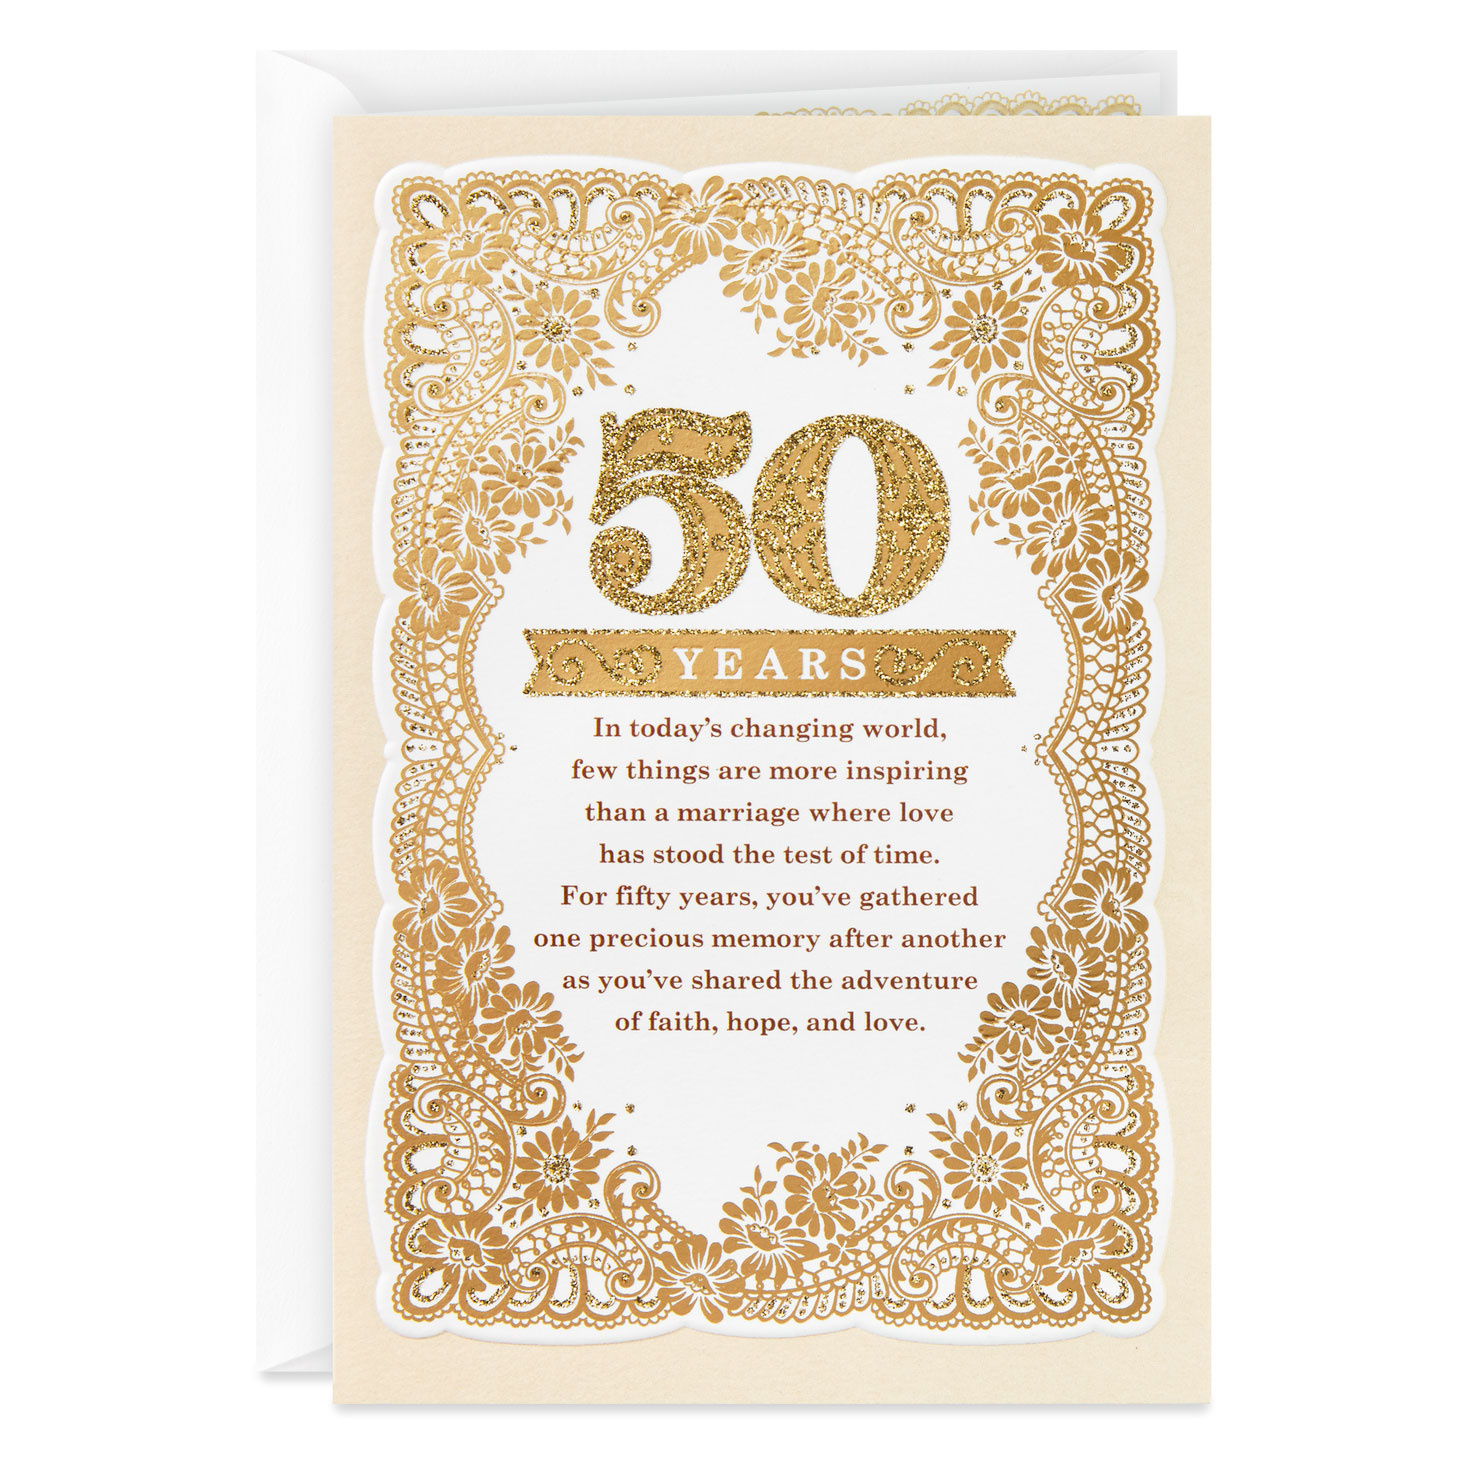 Hallmark Wedding Anniversary Gifts: The Beauty Of God's Gift Religious 50th Anniversary Card